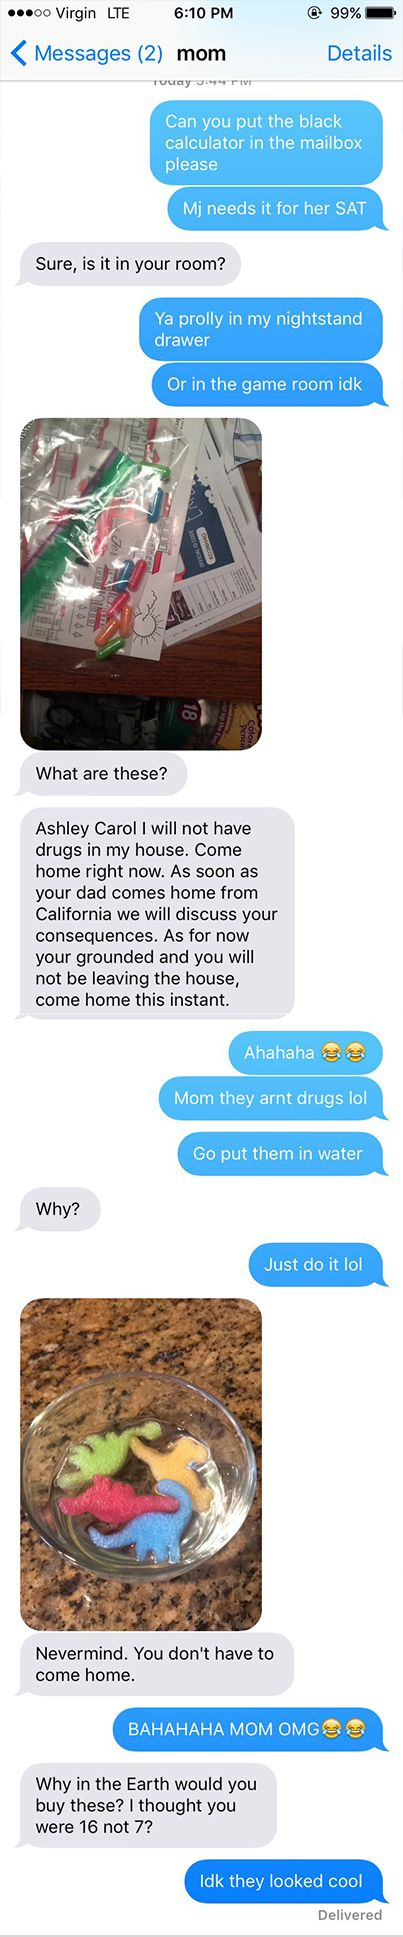 TEXAS — A Texas teenager's Tweets have social media cracking up at what happened when her mom stumbled upon what she thought was drugs in her bedroom. Ashley Banks posted screenshots o…